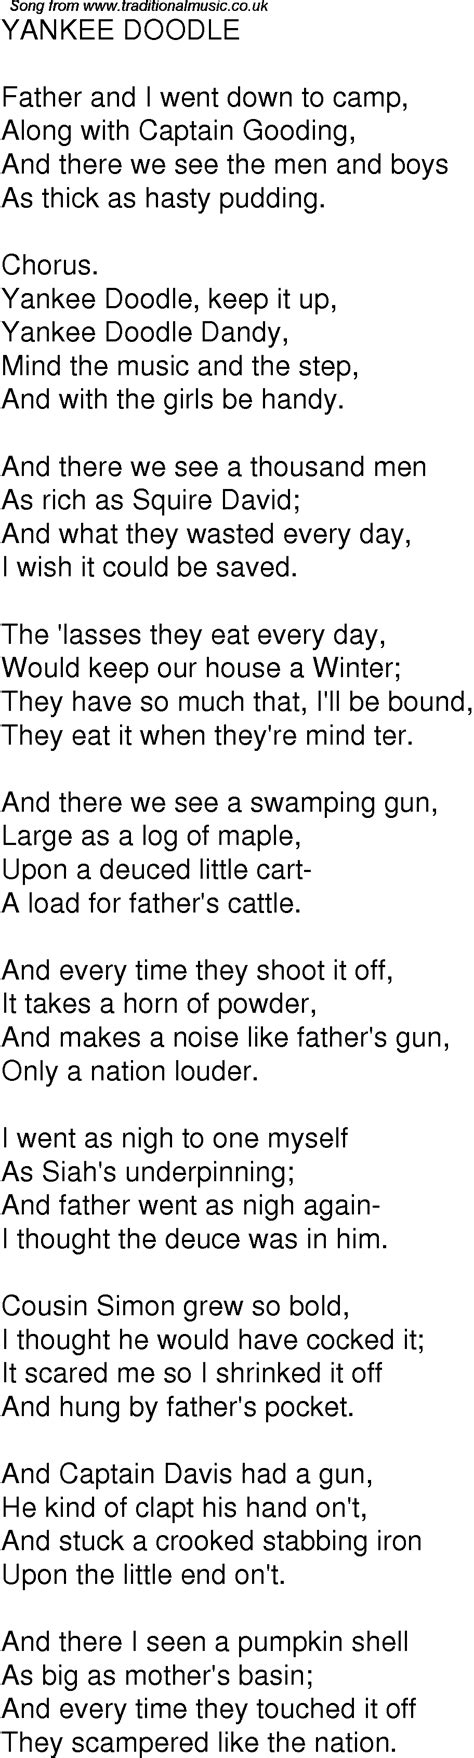 yankee doodle song free time song lyrics for 02 yankee doodle